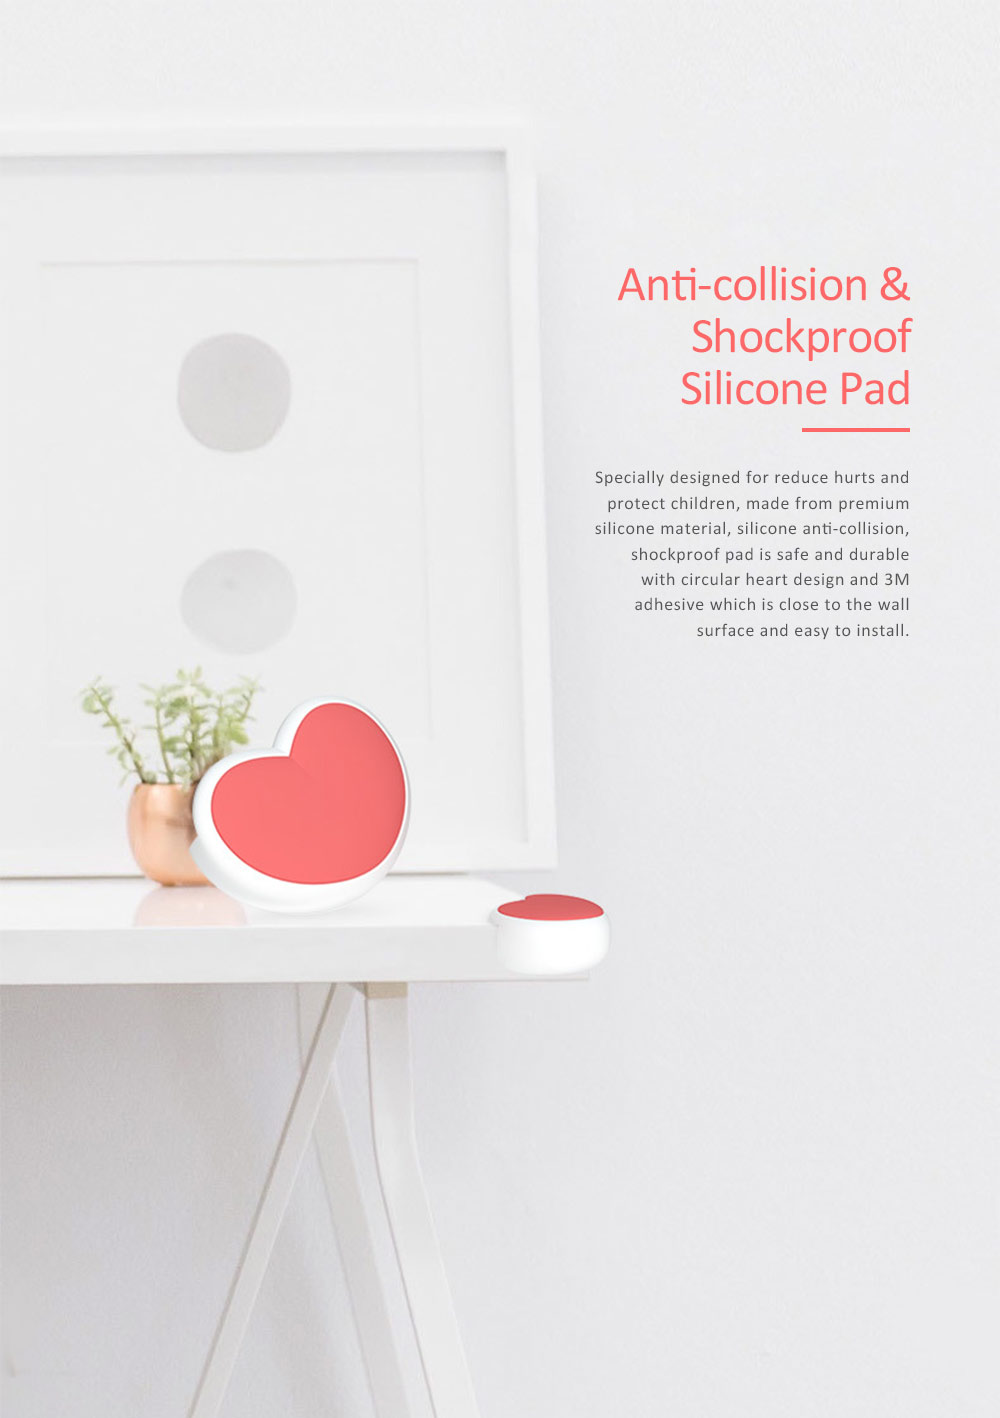 Desk Corner Thickened Protective Pad with Heart Design, Silicone Anti-collision, Shockproof Surround Pad 0